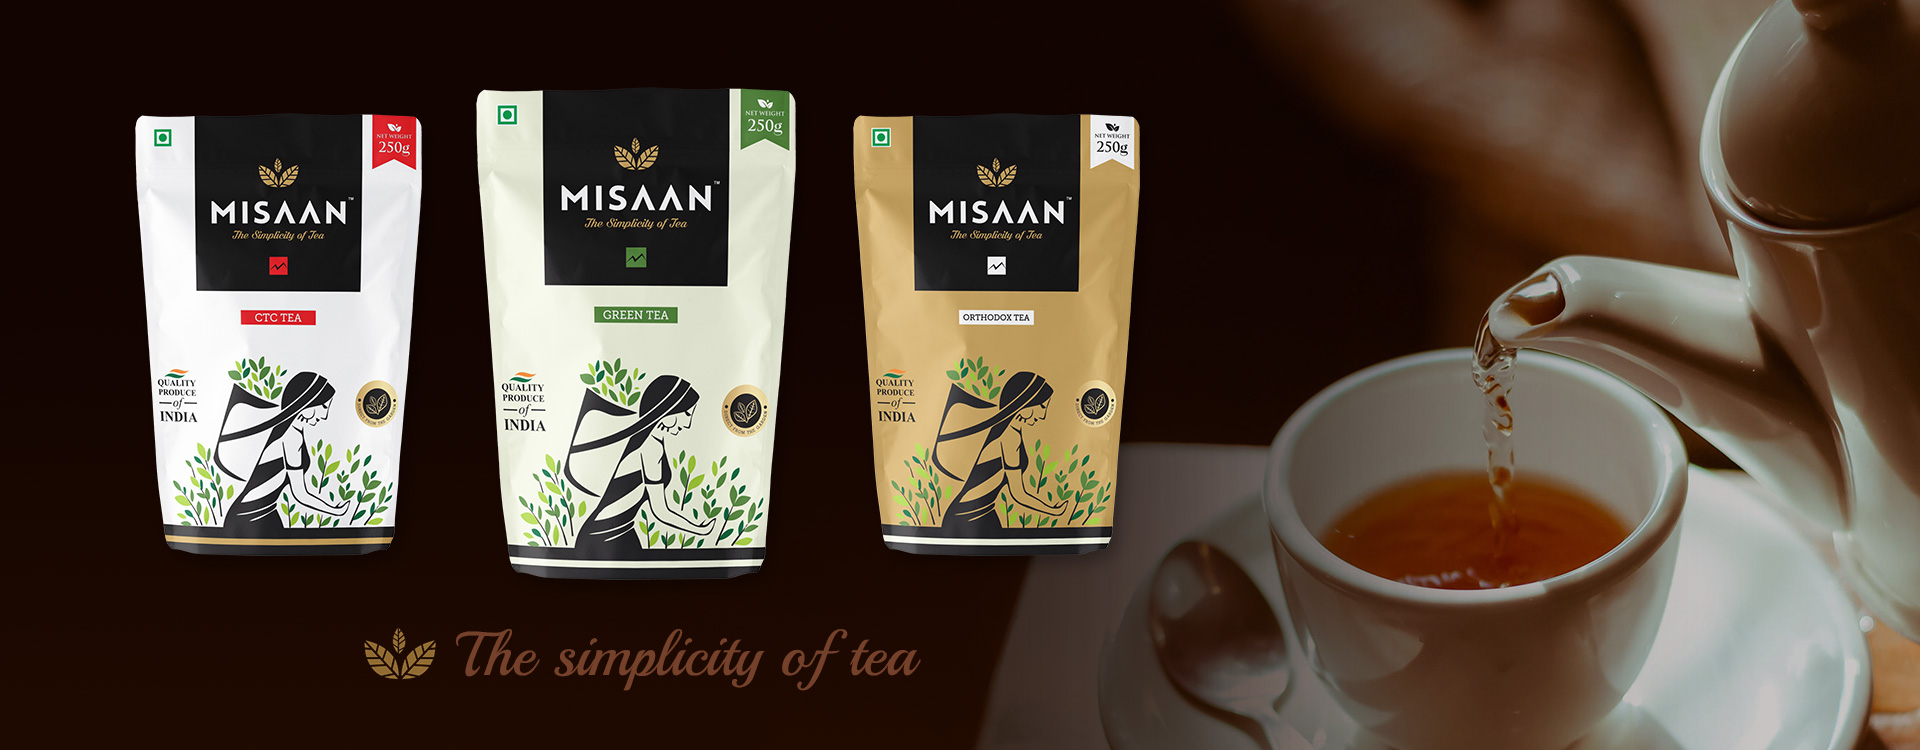 Missan - The Simplicity of Tea